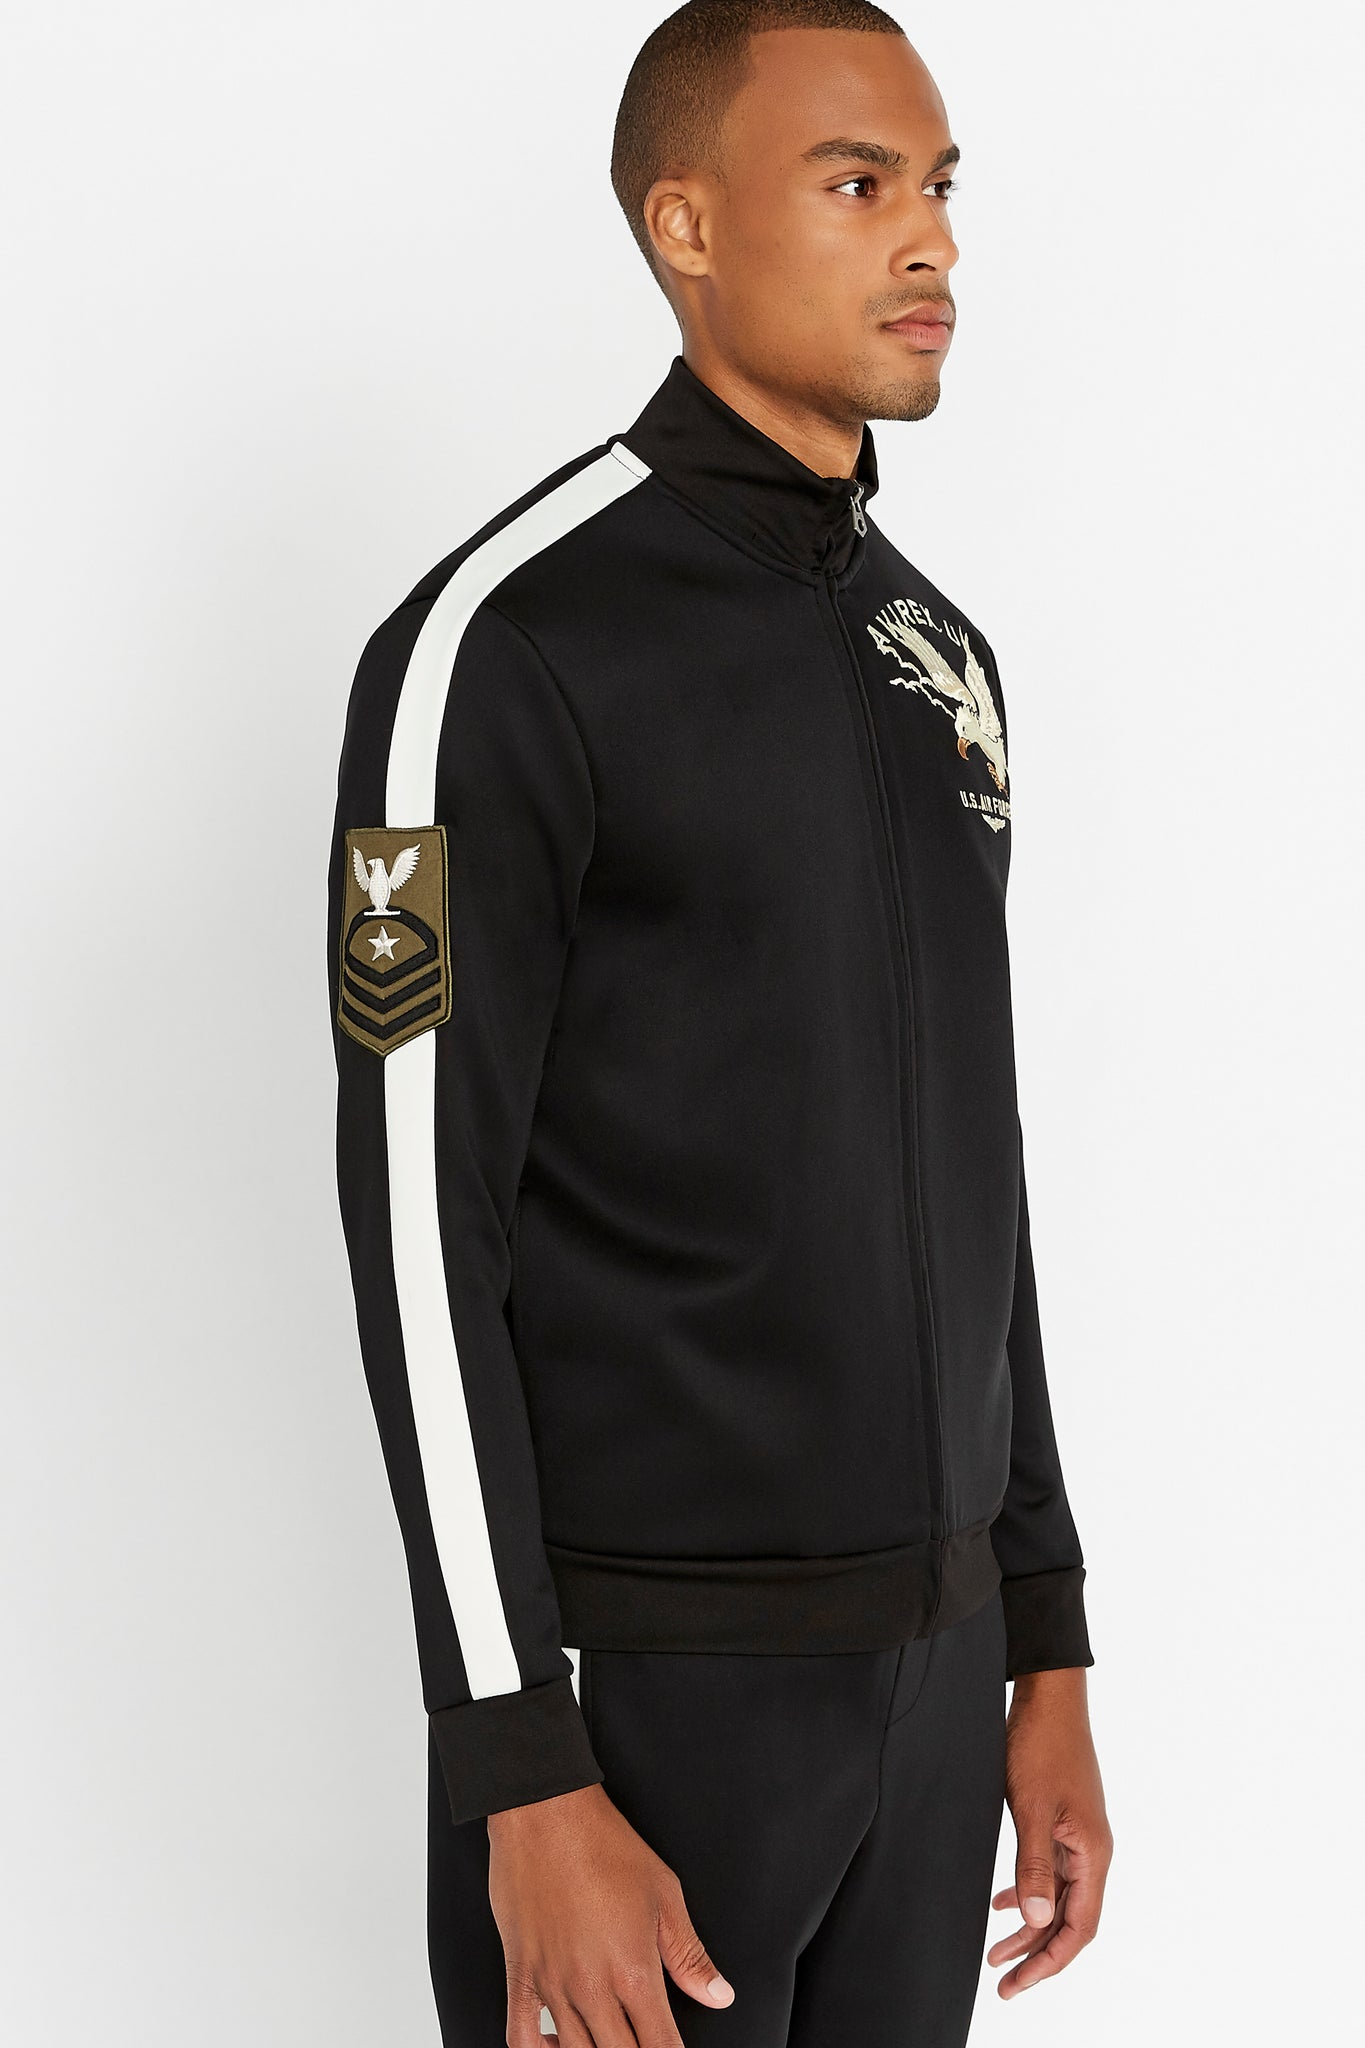 Side view of men wearing a fully zipped black jet track jacket with eagle embroidery on the chest and bold white side strip on the right sleeve